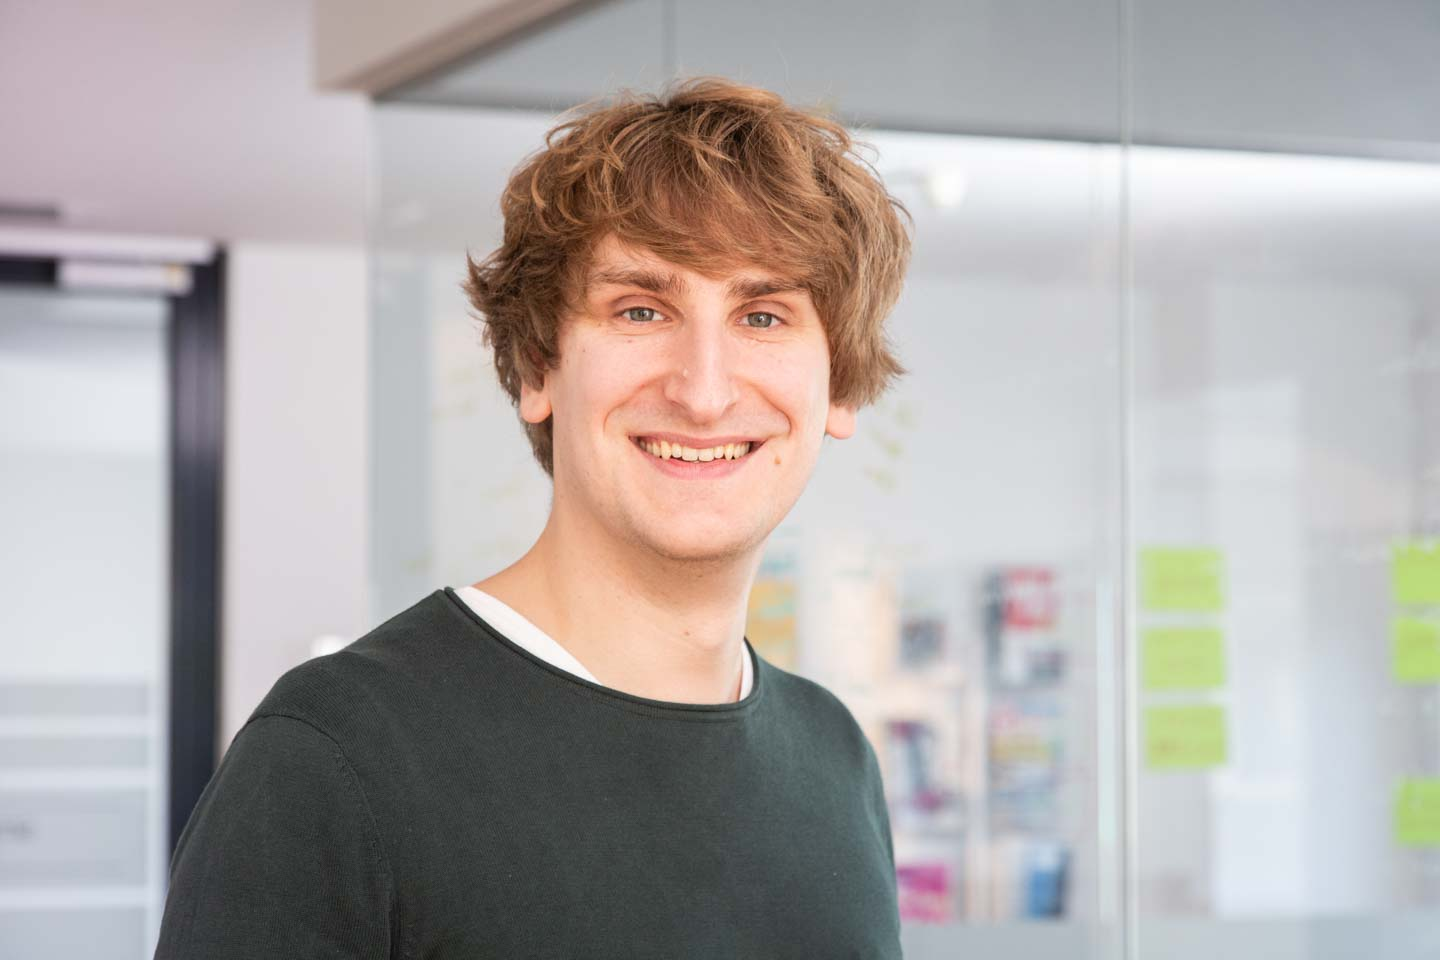 Ein Foto von Marc Alexander Saleiko, Software- und Web-Developer in der Werbeagentur smply.gd